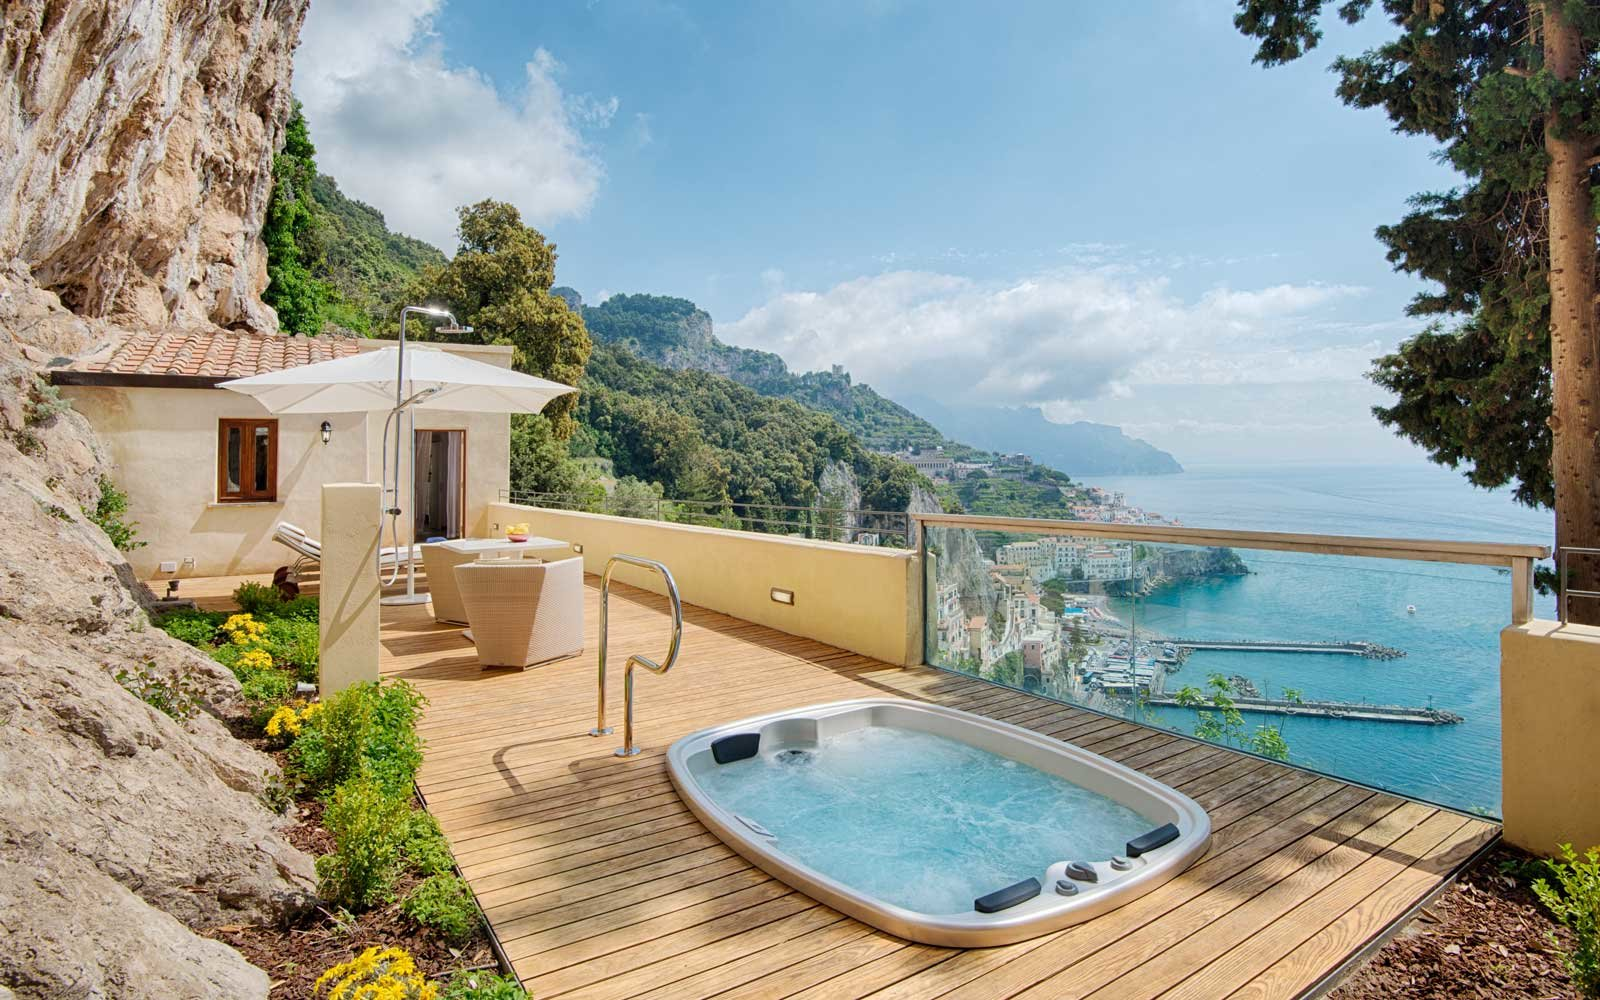 Grand Hotel Convento di Amalfi, and NH Collection property